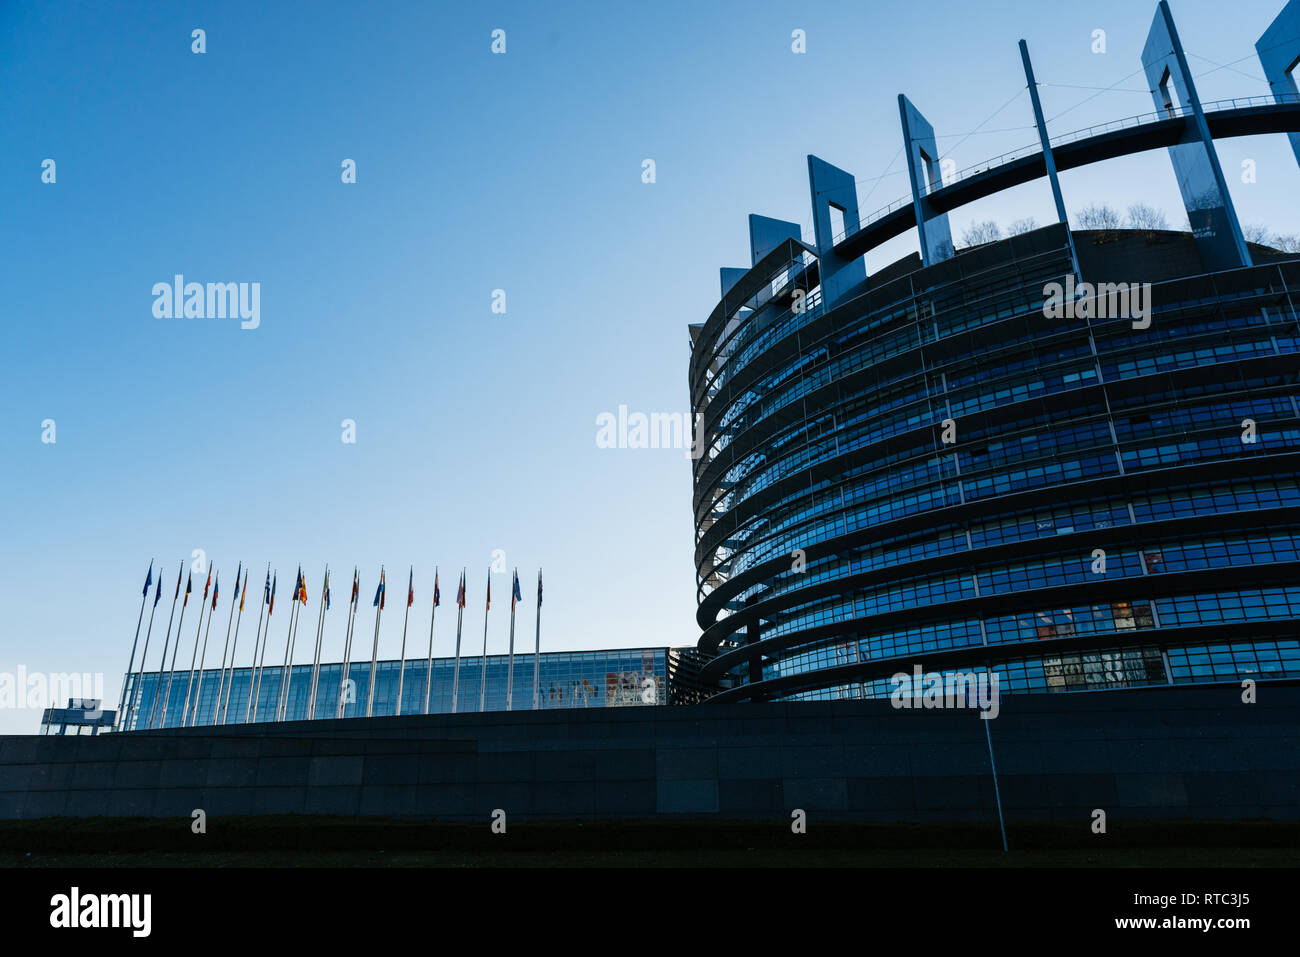 STRASBOURG, FRANCE - APR 6, 2018: Side view of European Parliament building in Strasbourg with all European Union flags waving at sunrise - Stock Image